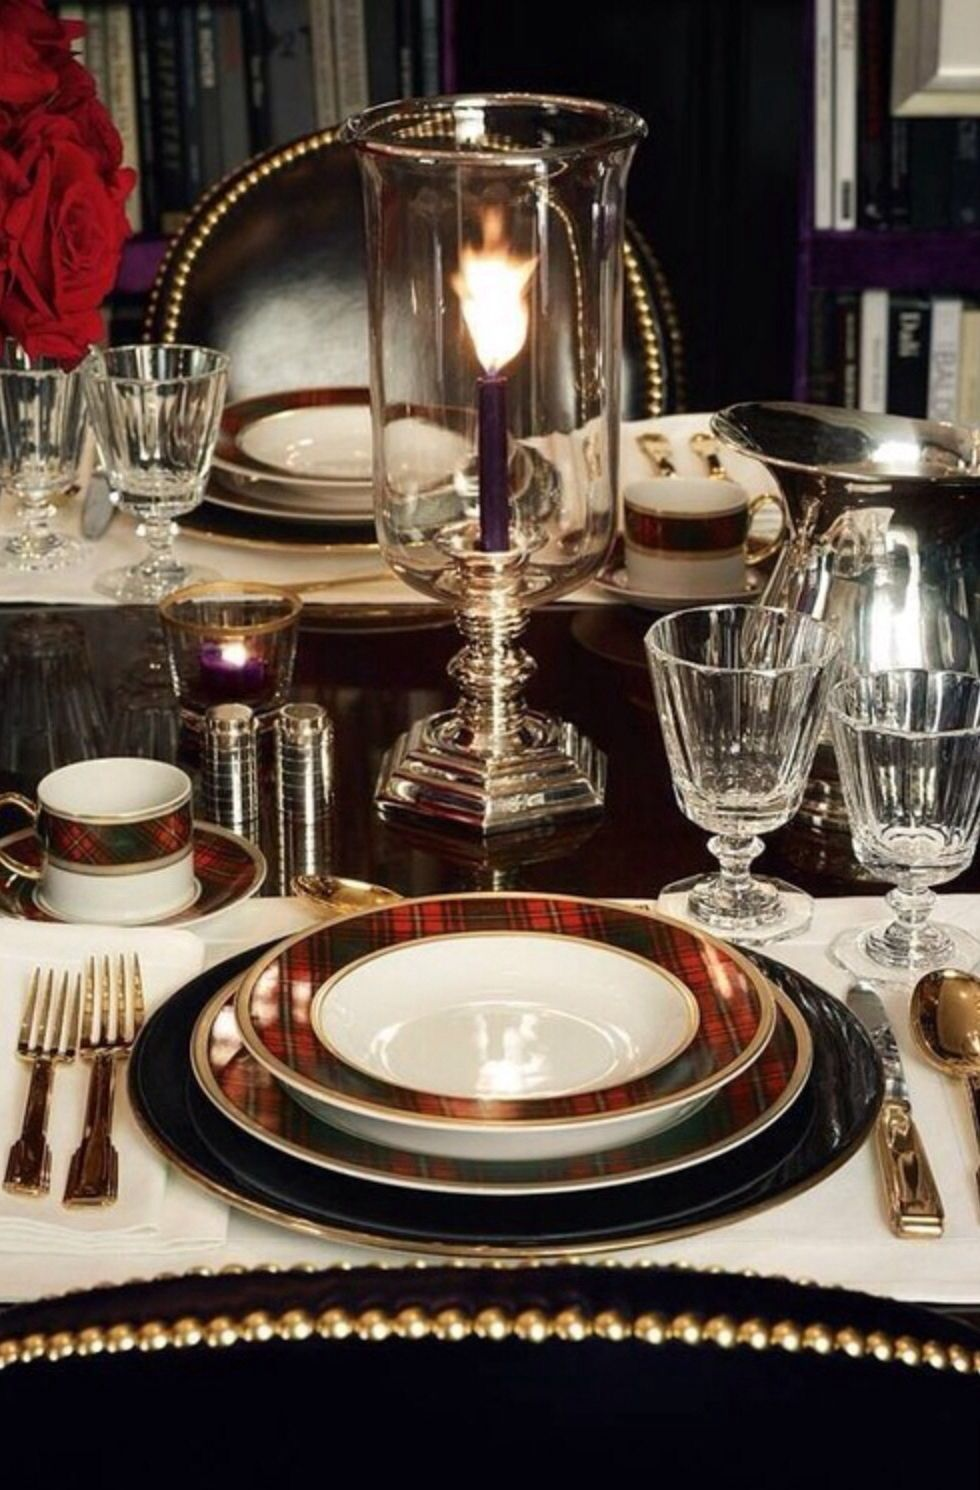 Gorgeous Christmas place setting. Love the plaid with black and gold.